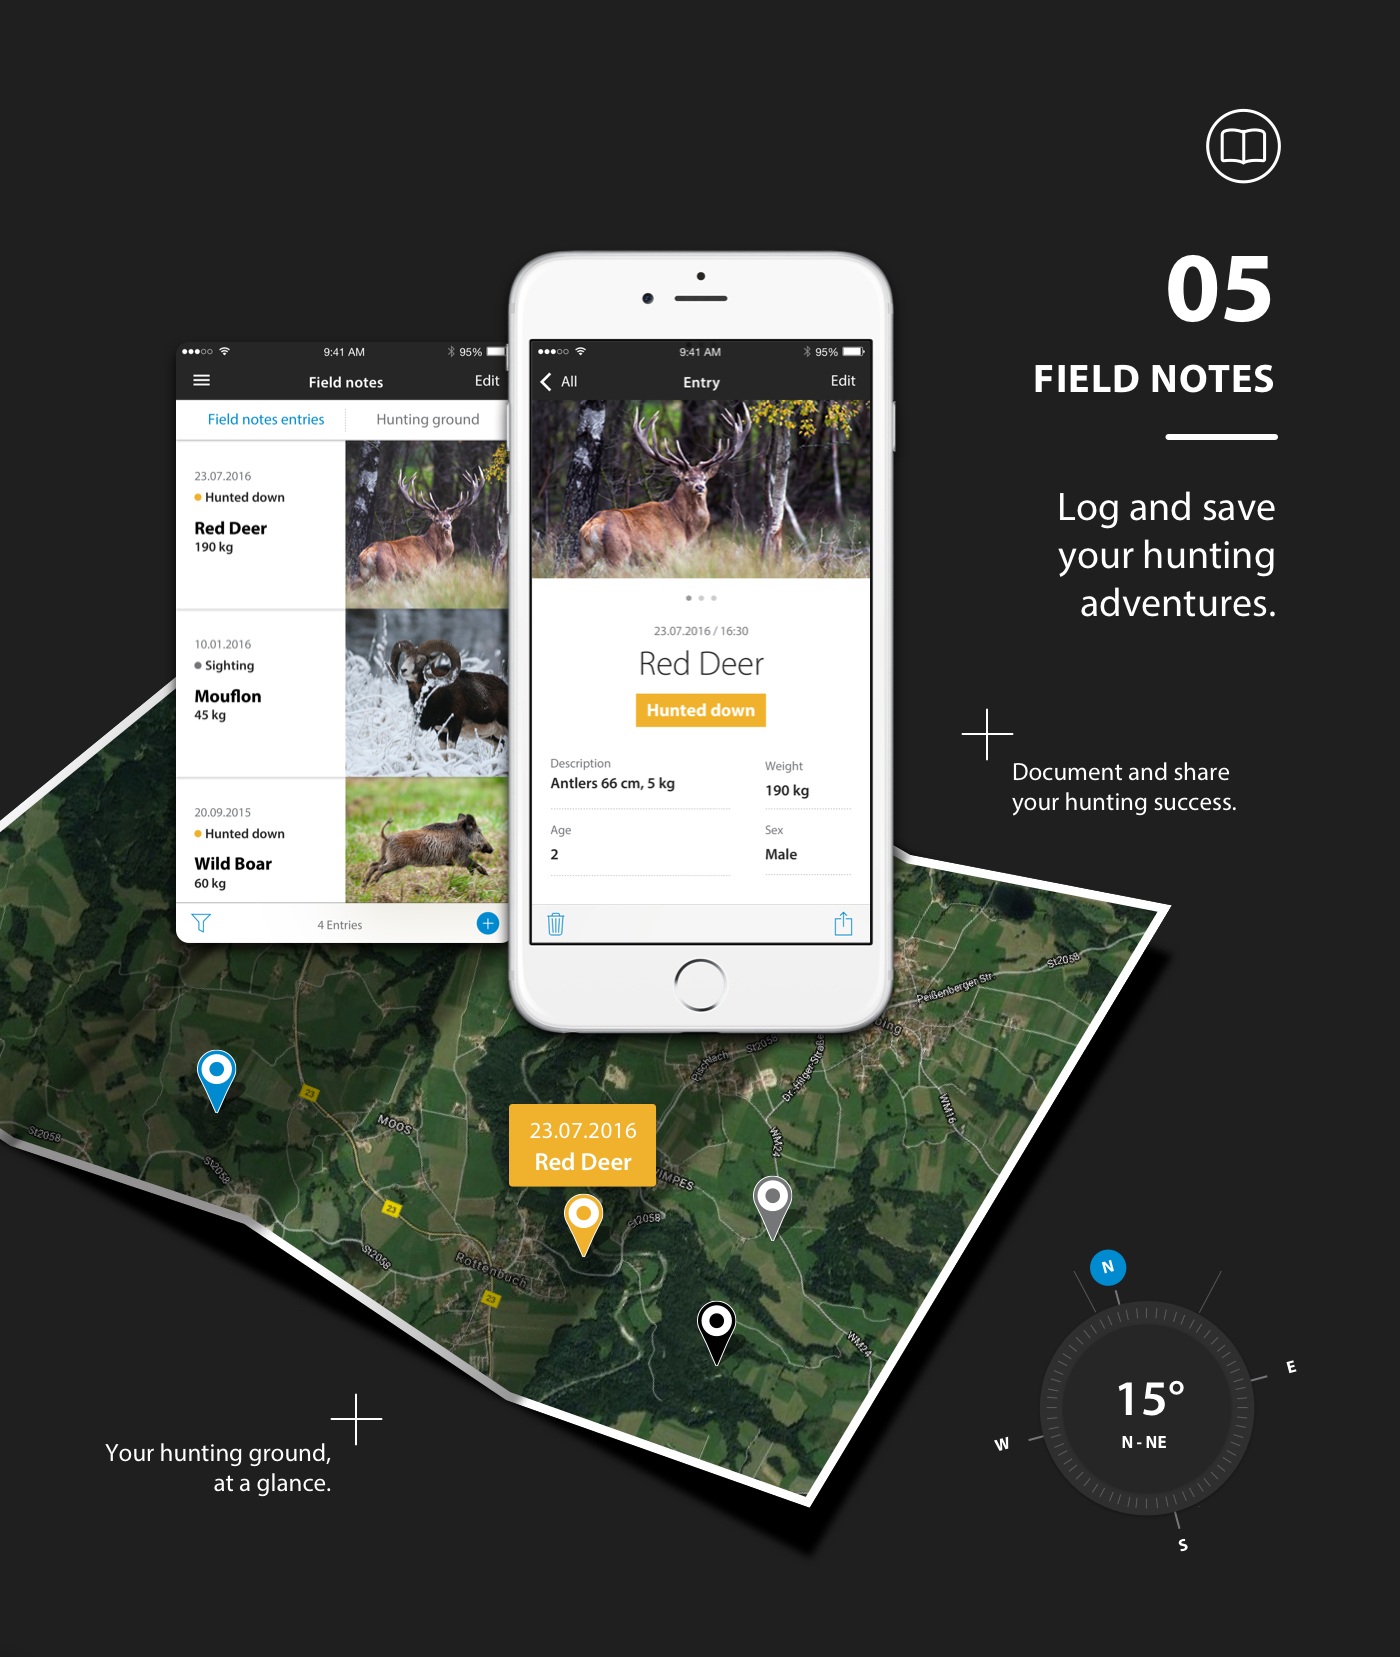 ZEISS HuntingApp field notes